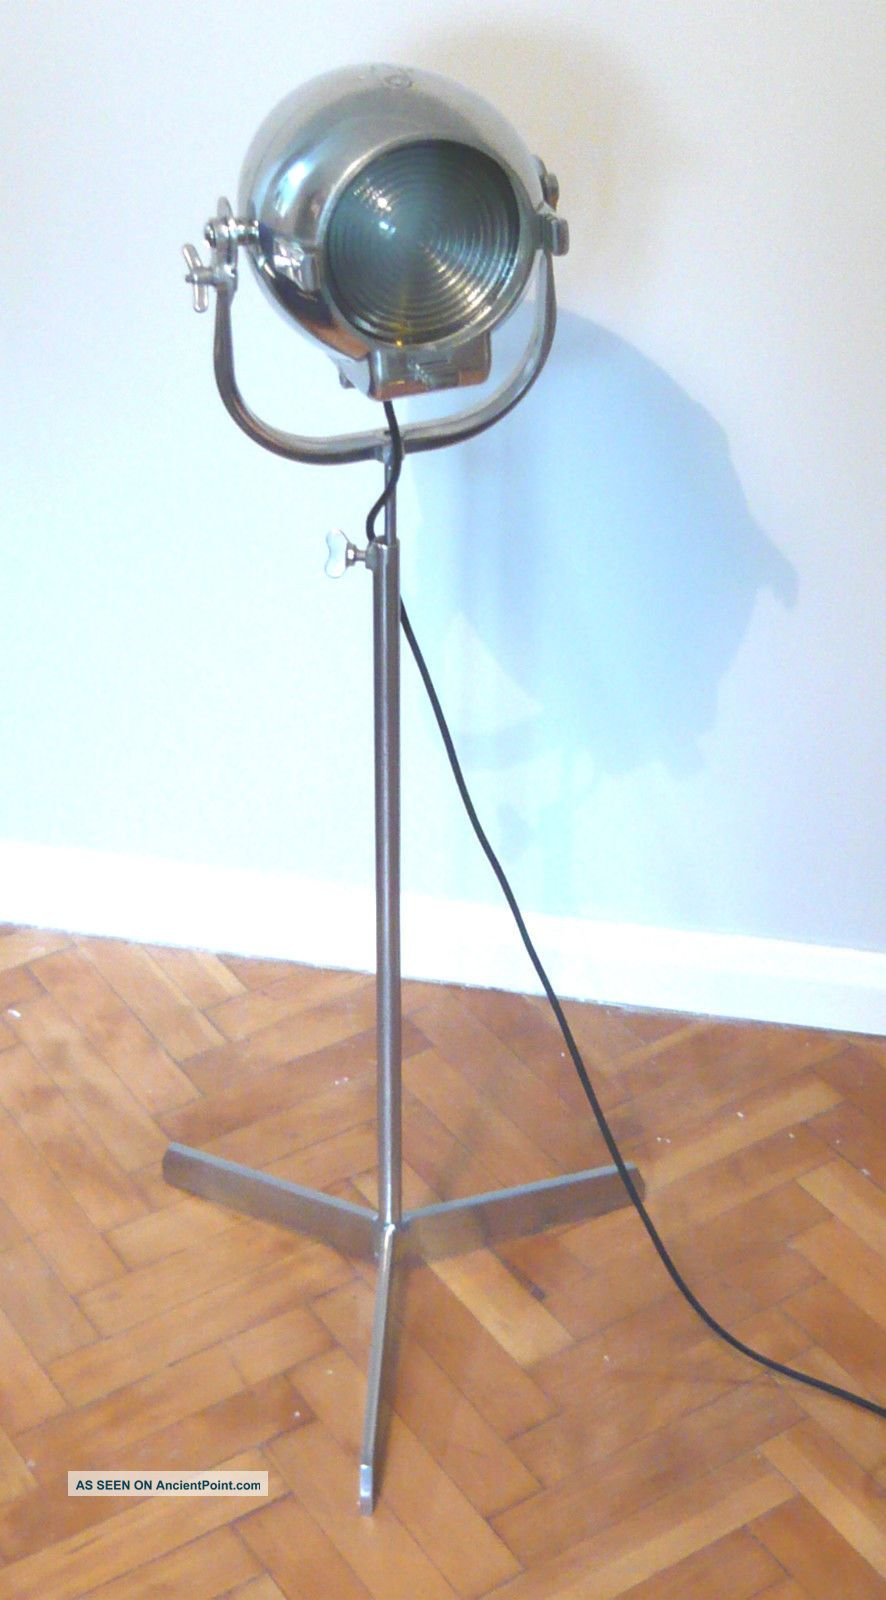 Vintage Theatre Light Studio Floor Industrial Antique Lamp Alessi Eames Starck Uncategorized photo